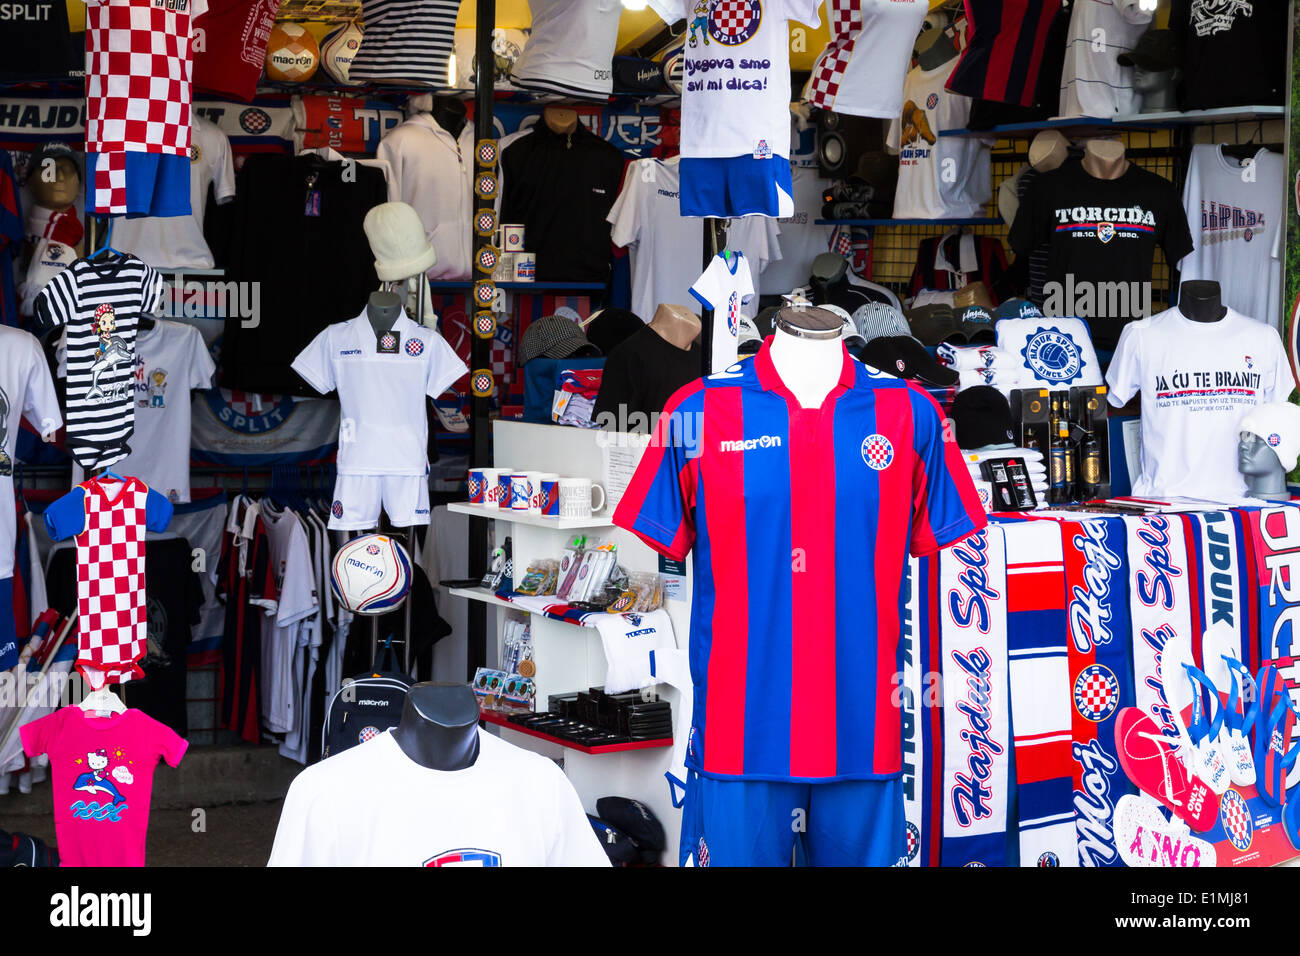 T Shirts And Scarves Of Hajduk Split Are On Sale As Souvenirs In A Stock Photo Alamy